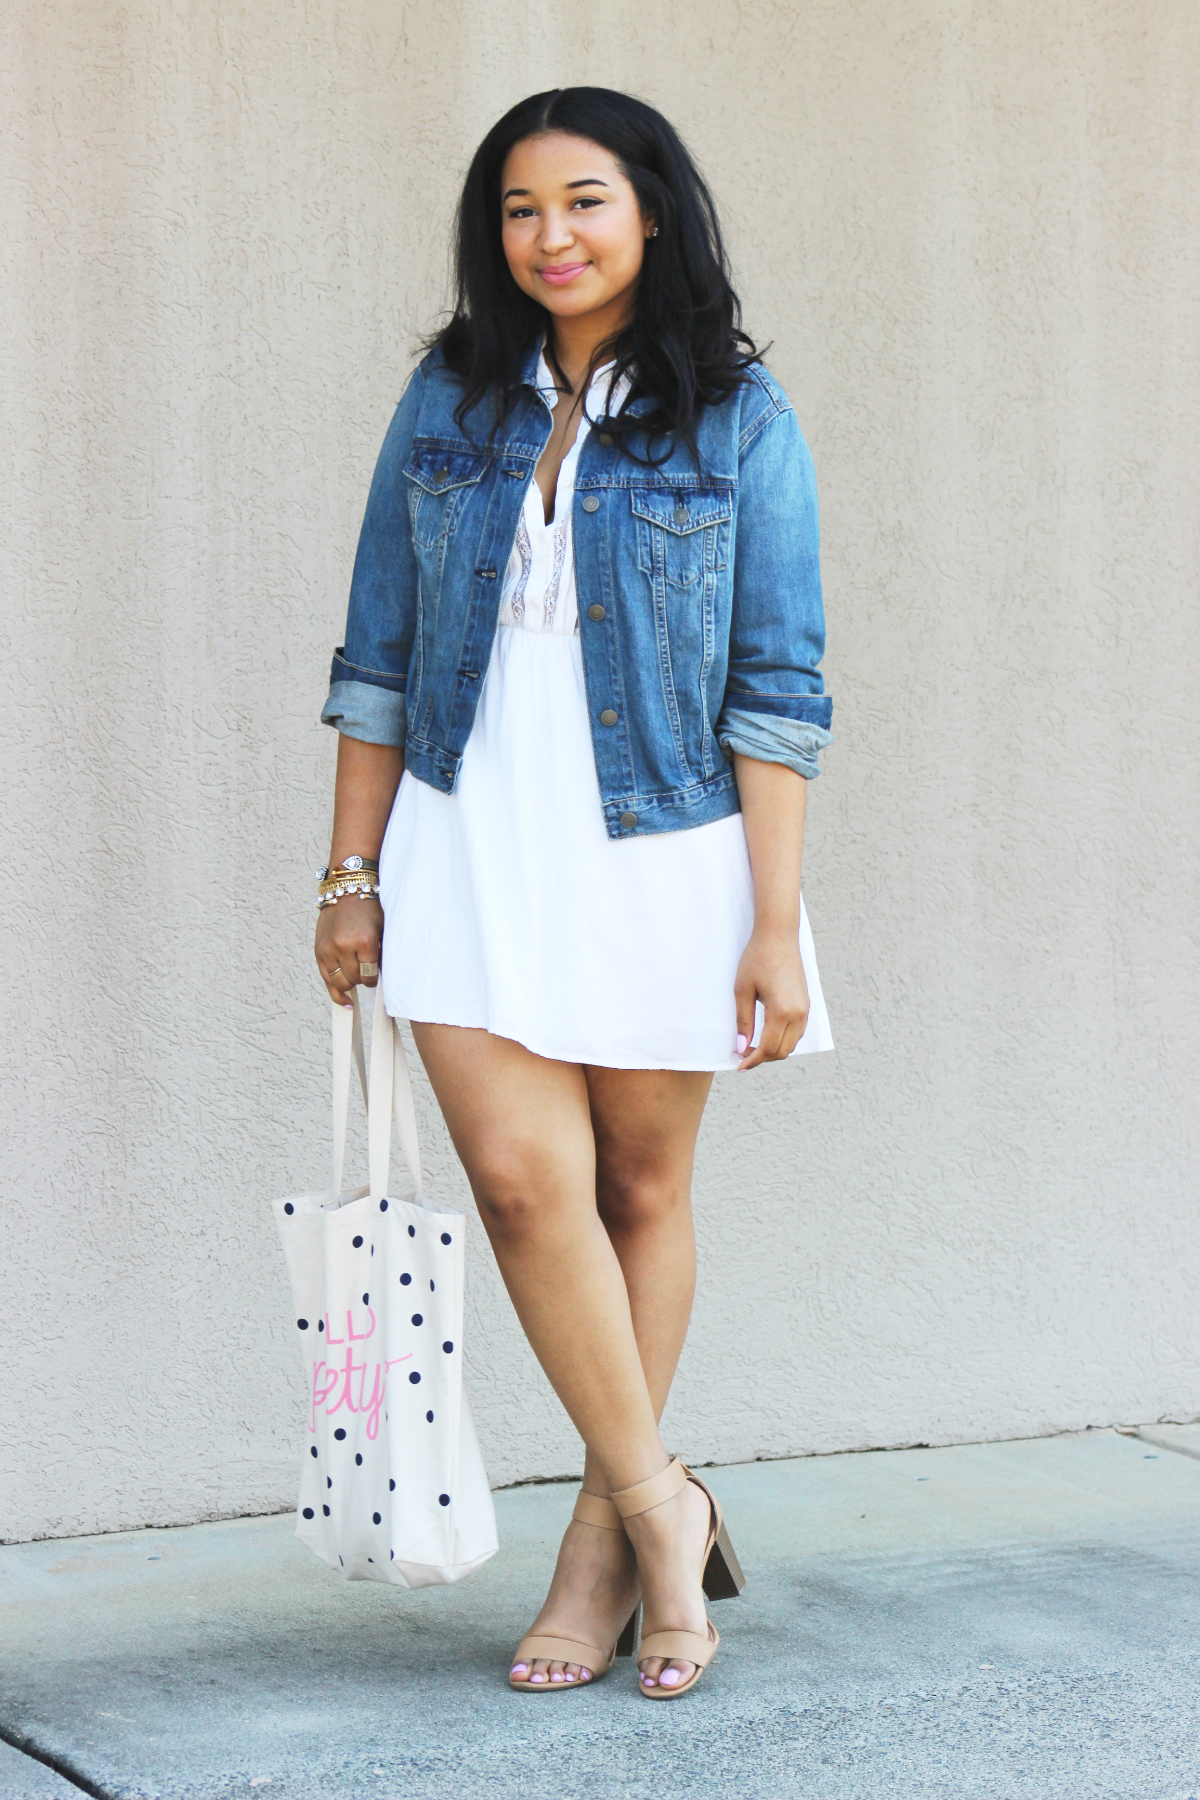 White Dress & Denim Jacket